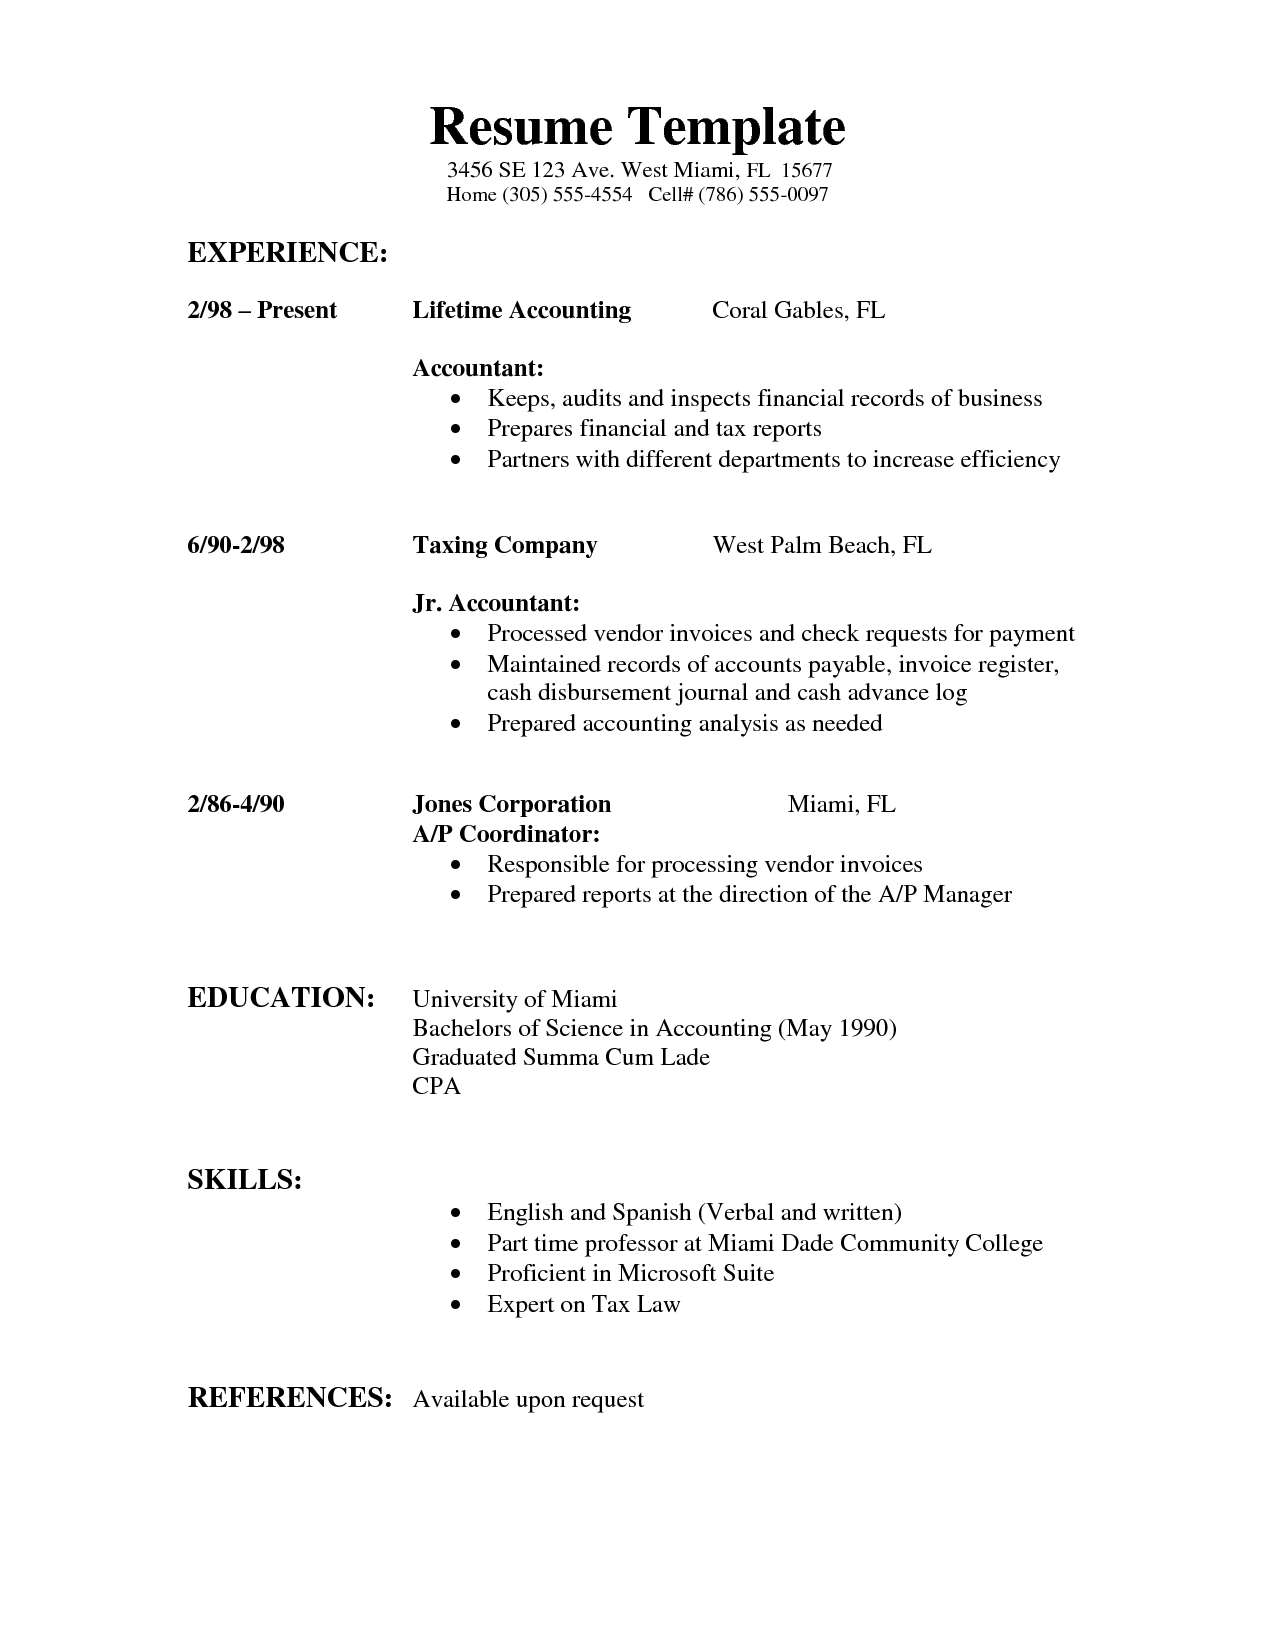 resume layout construction   cv english example canadaresume layout construction build your construction resume with keywords monster resume examples  letter and resume